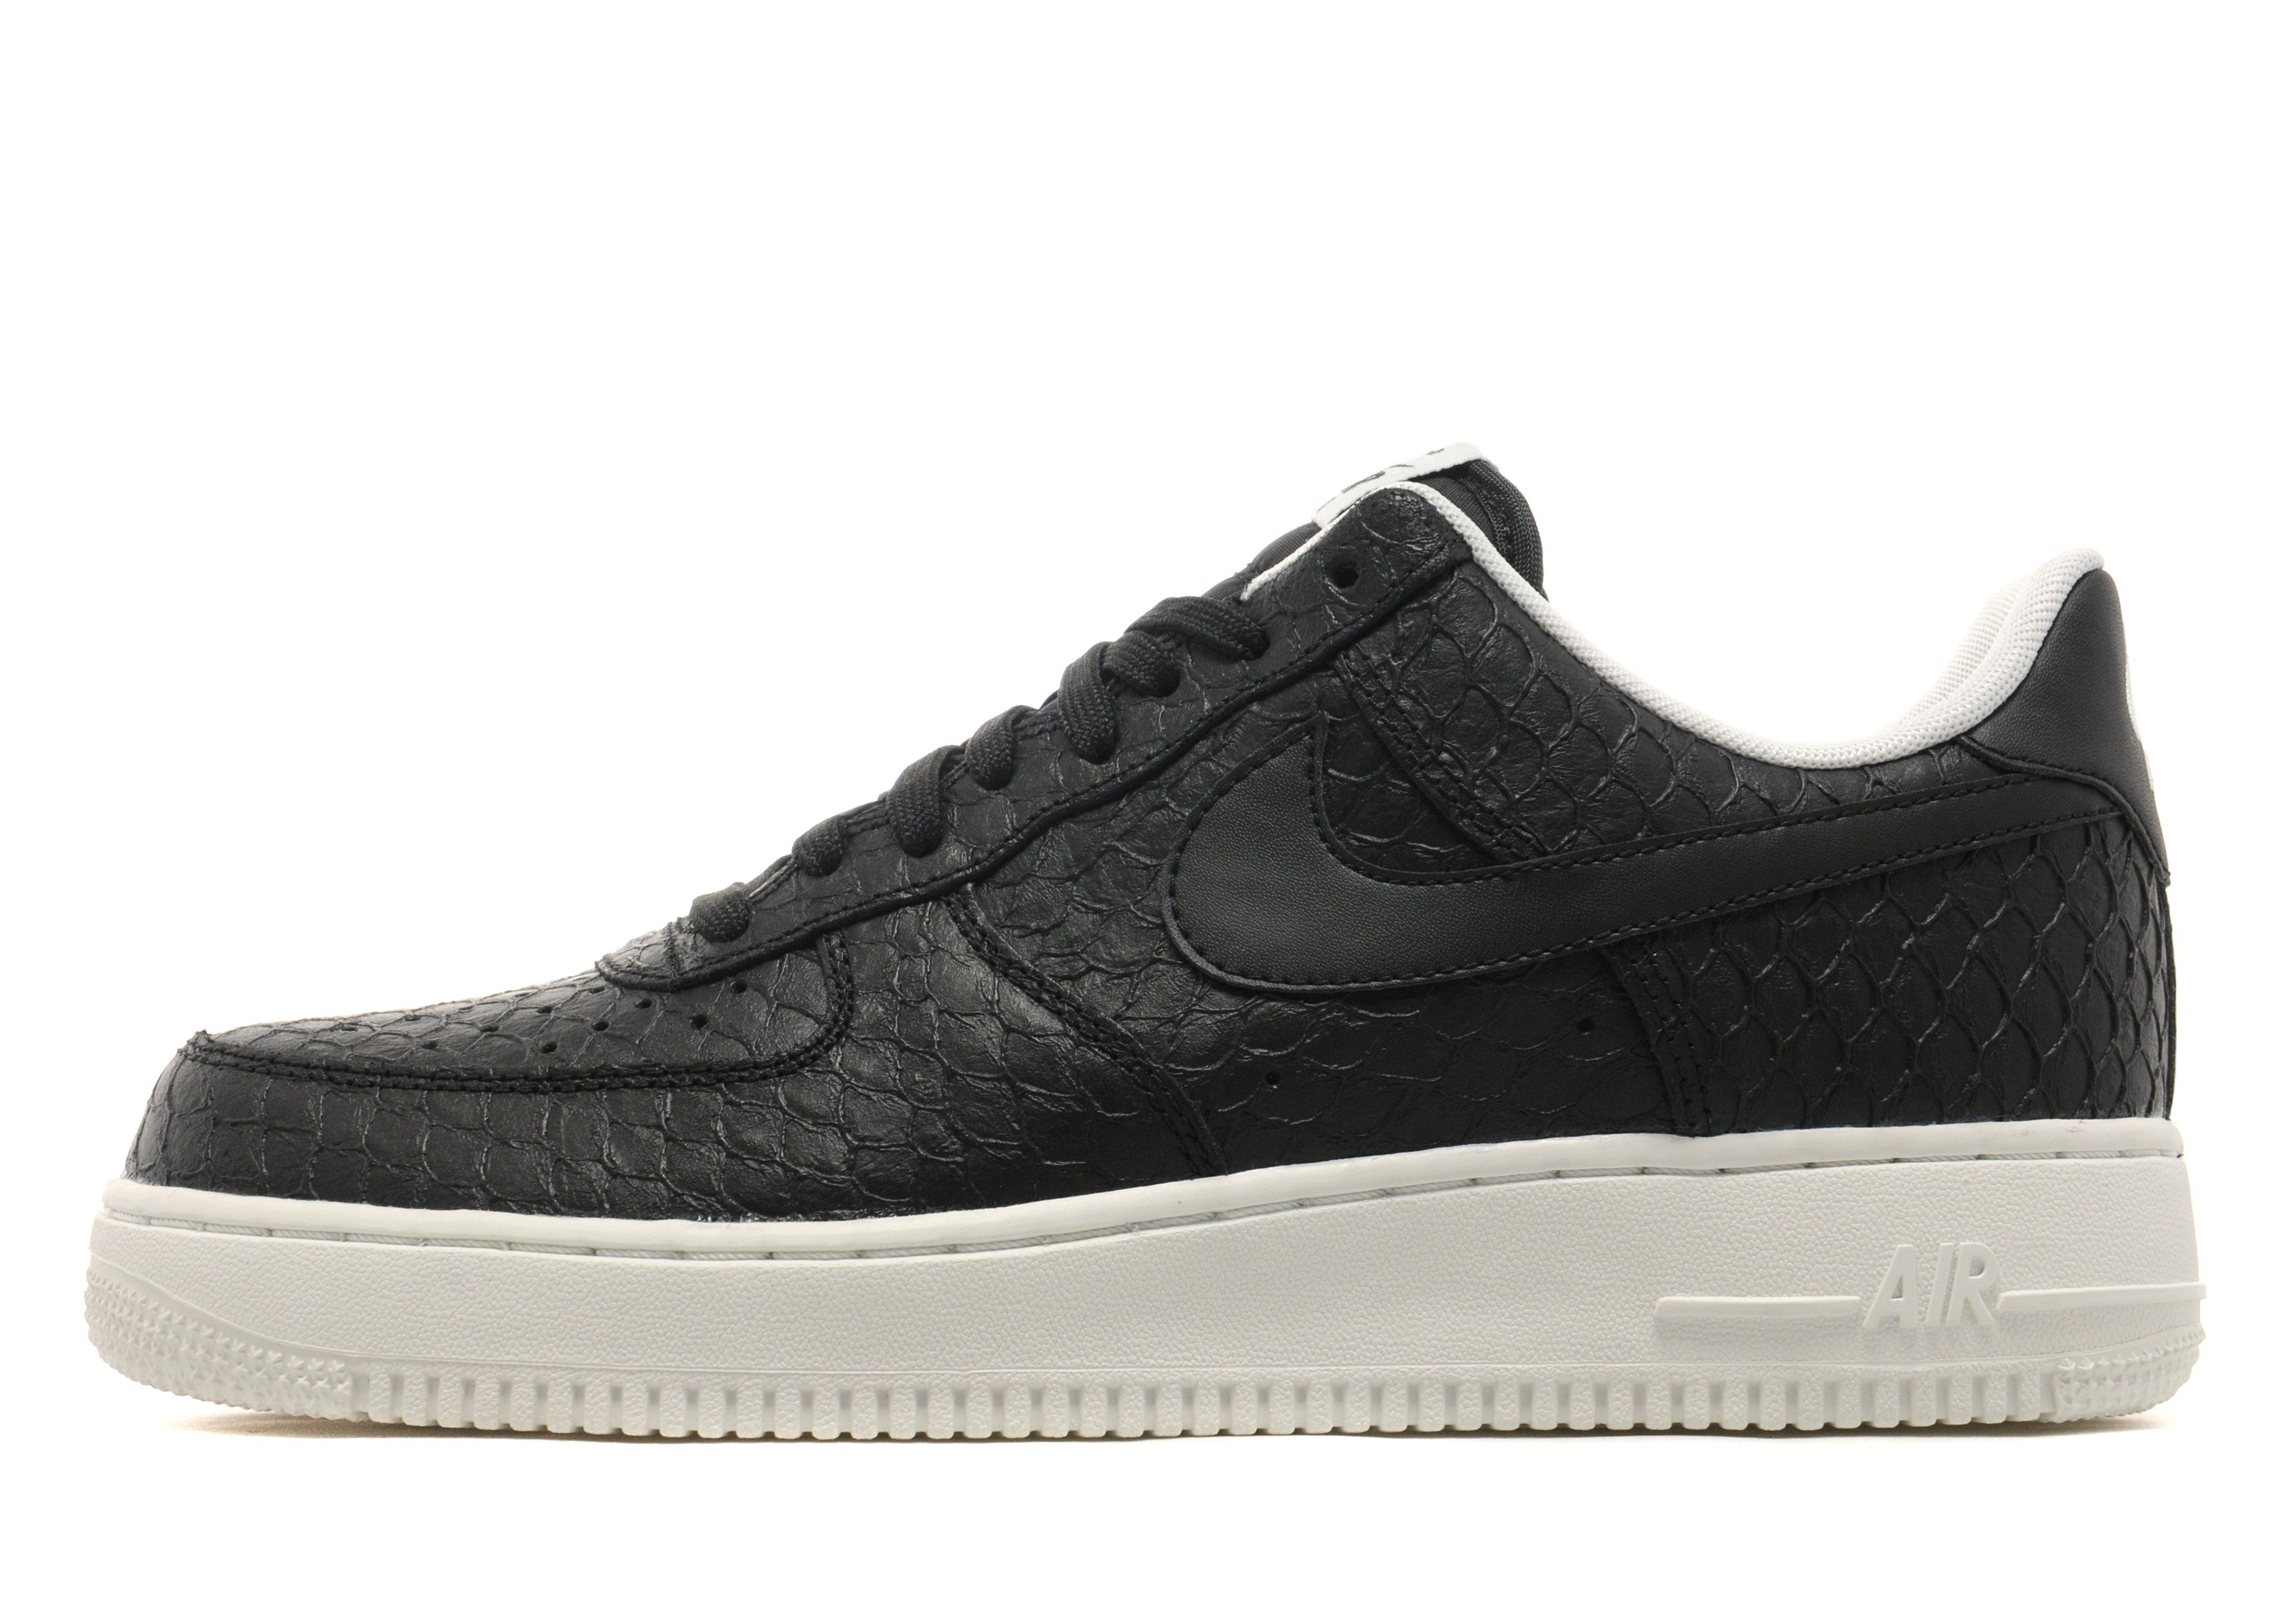 info for 371ac 14b98 85%OFF Nike Air Force 1 LV8   JD Sports - molndalsrev.se